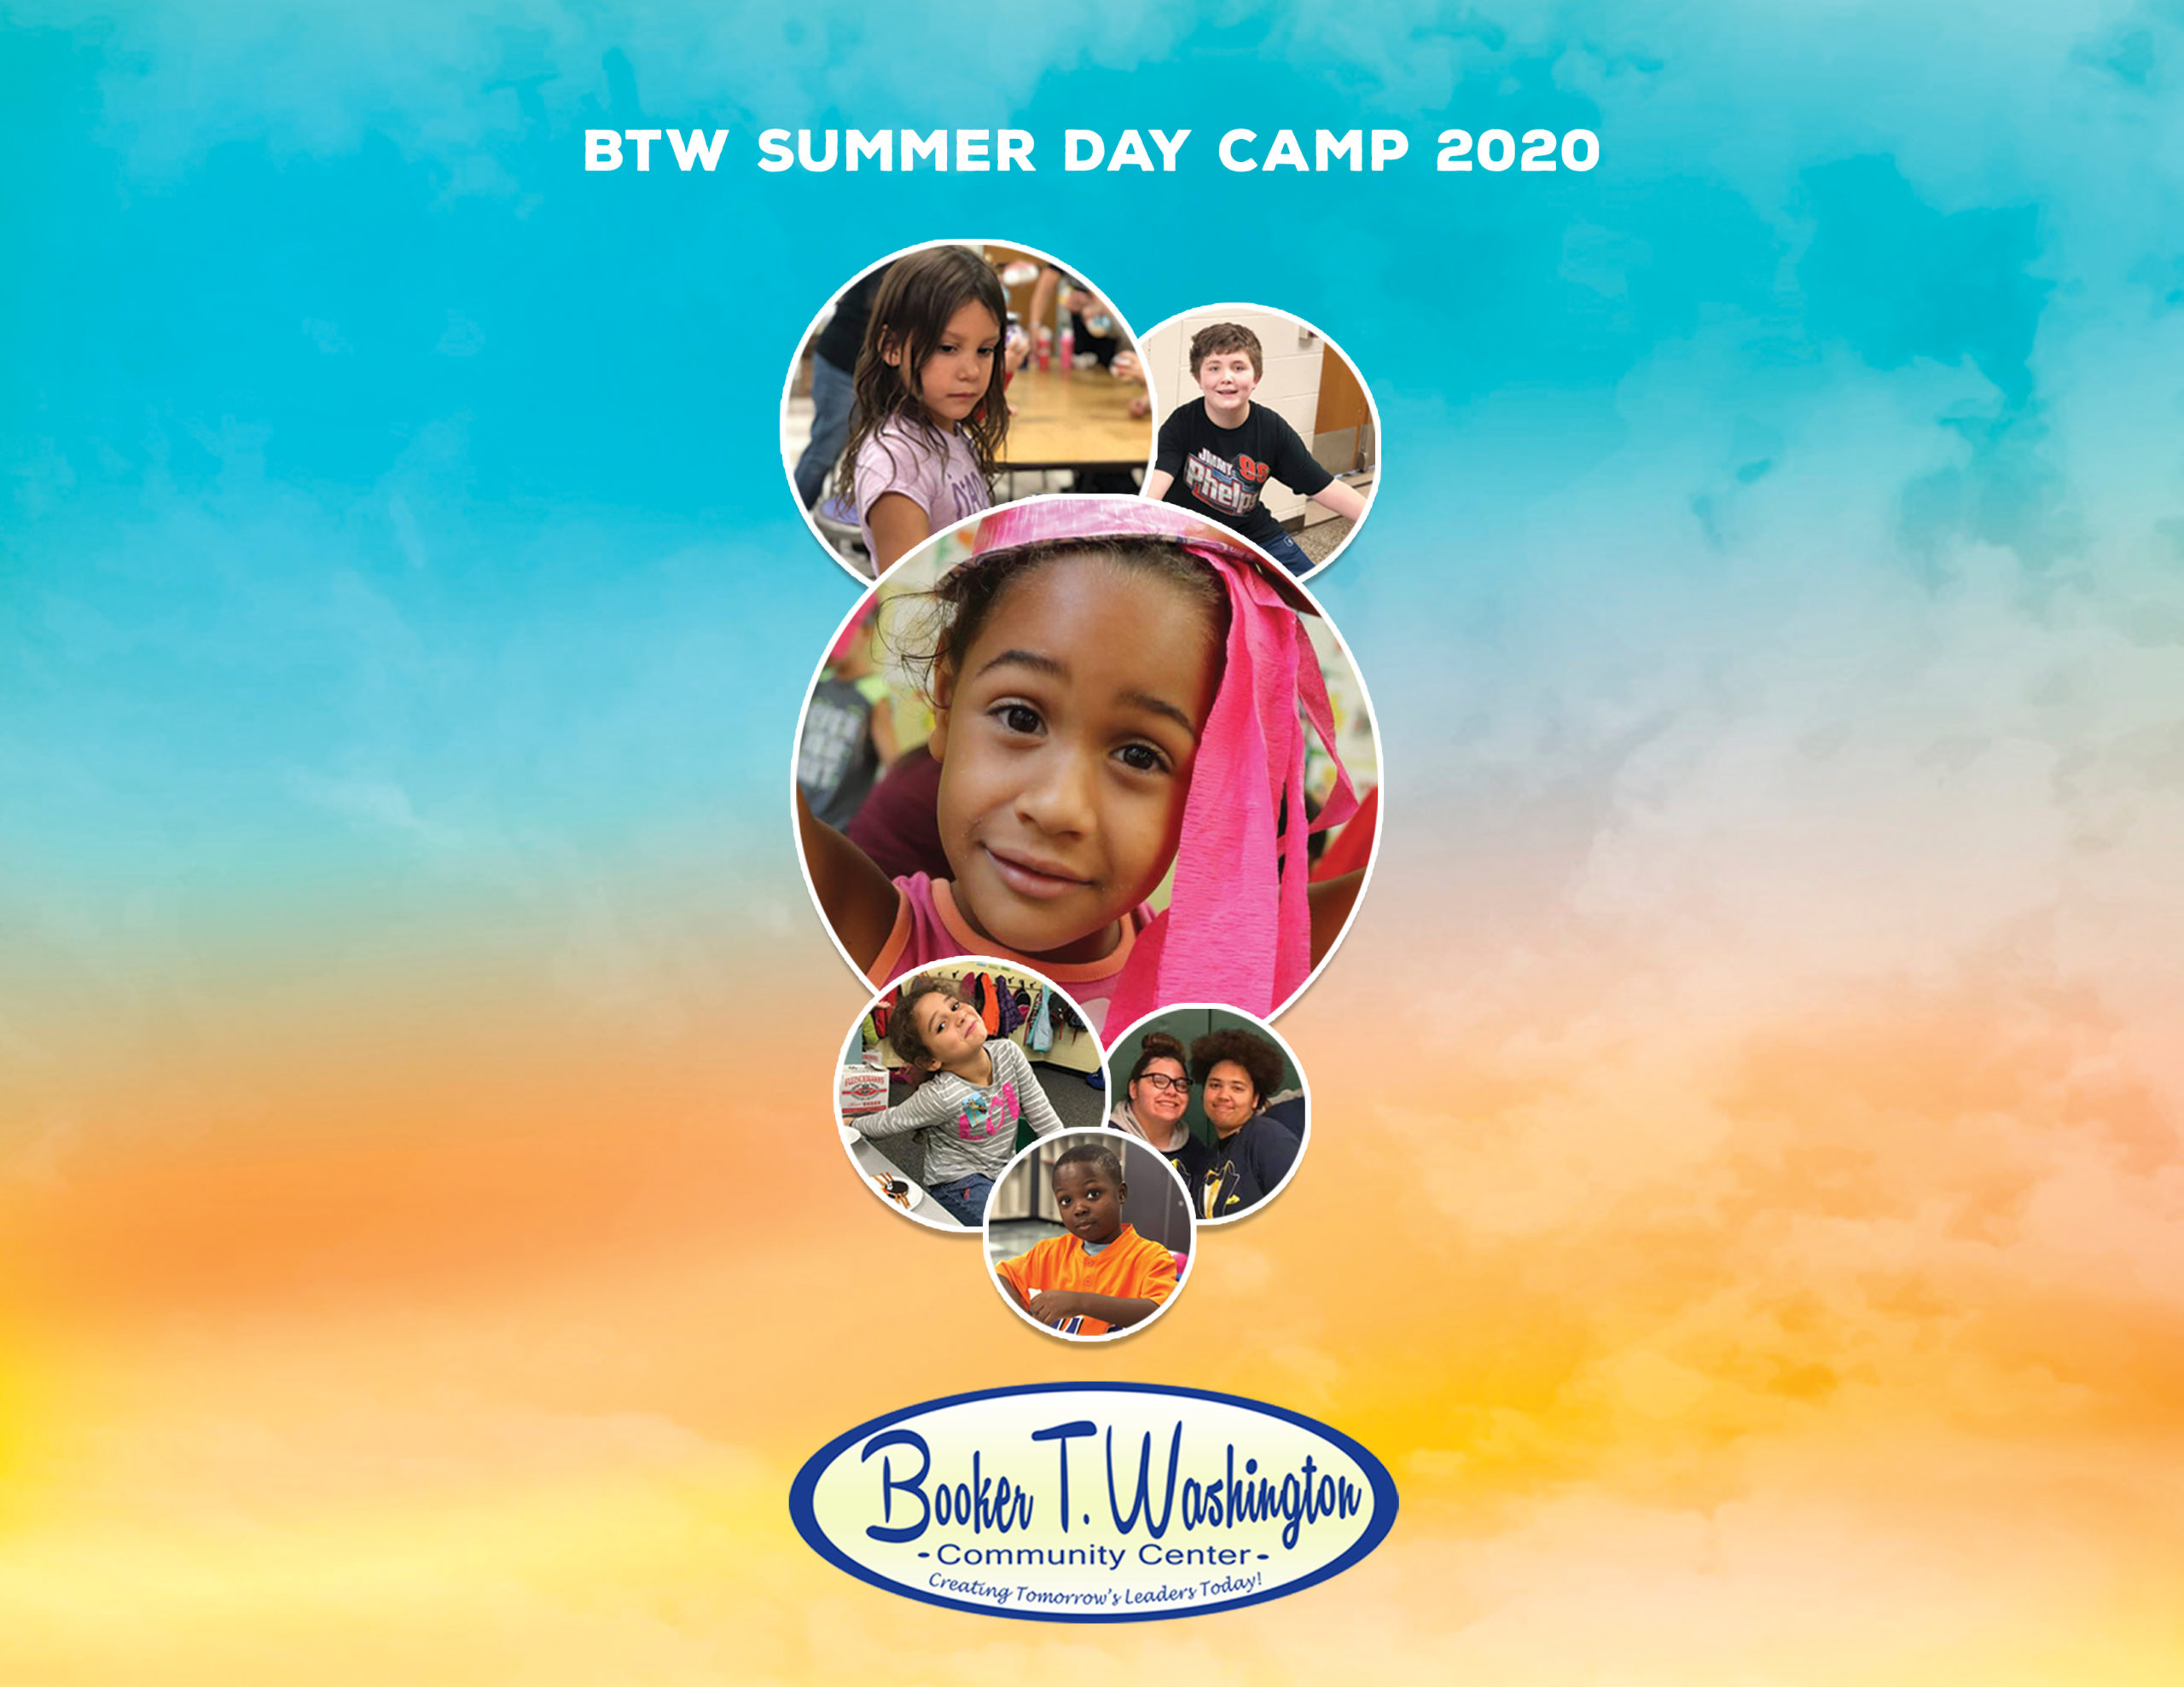 Summer Day Camp 2020